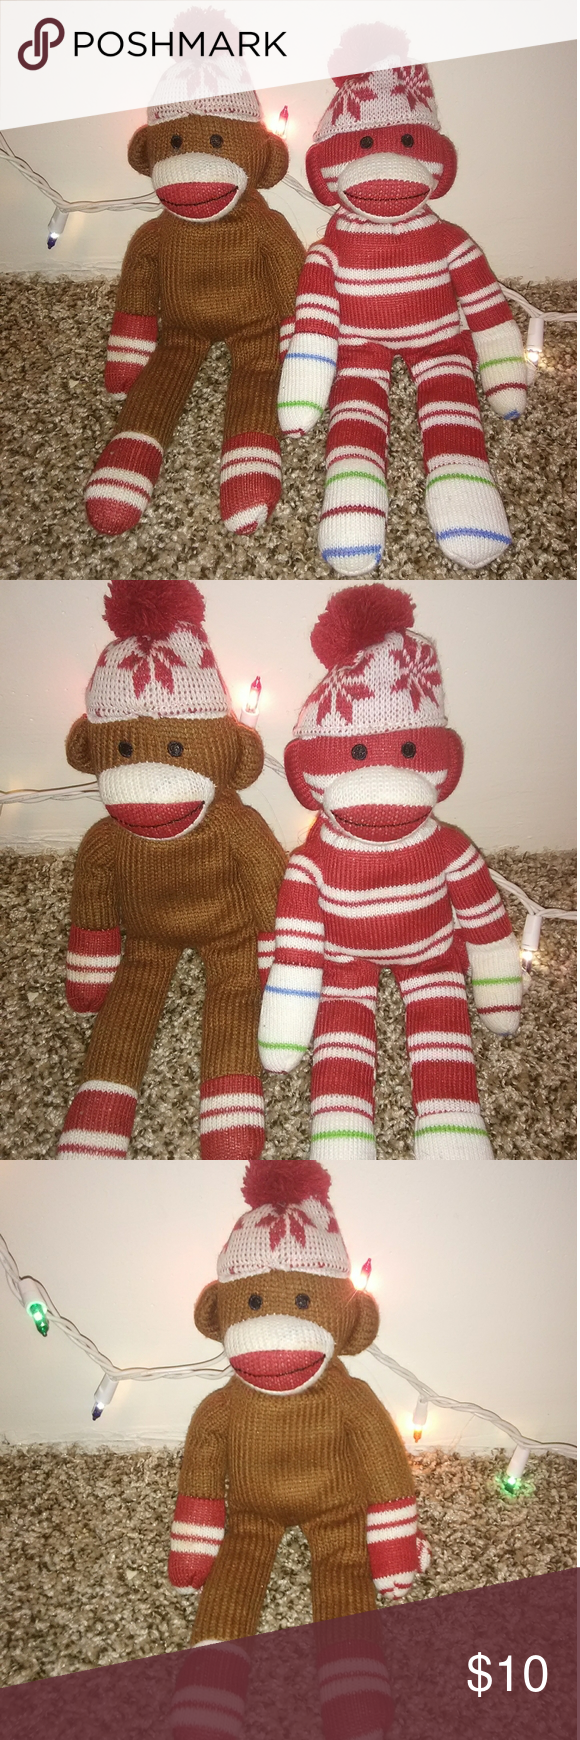 Christmas Sock Monkey Set You get both.  In excellent condition. Any questions please ask.  Thanks for viewing, happy poshing! Holiday #sockmoneky